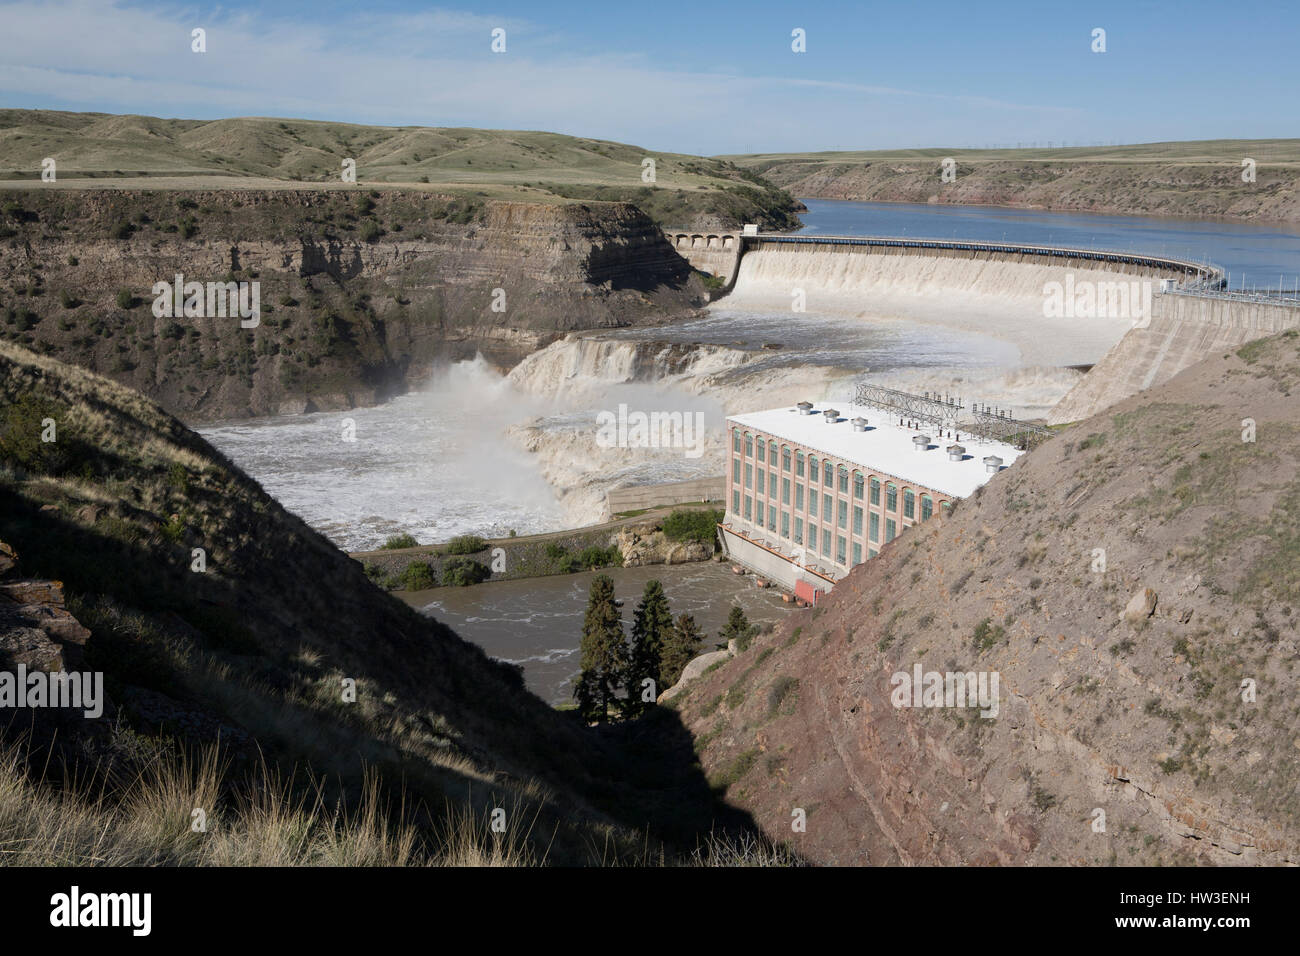 Water flows over Ryan Dam and the Great Falls of the Missouri River in this view from River's Edge Trail. - Stock Image